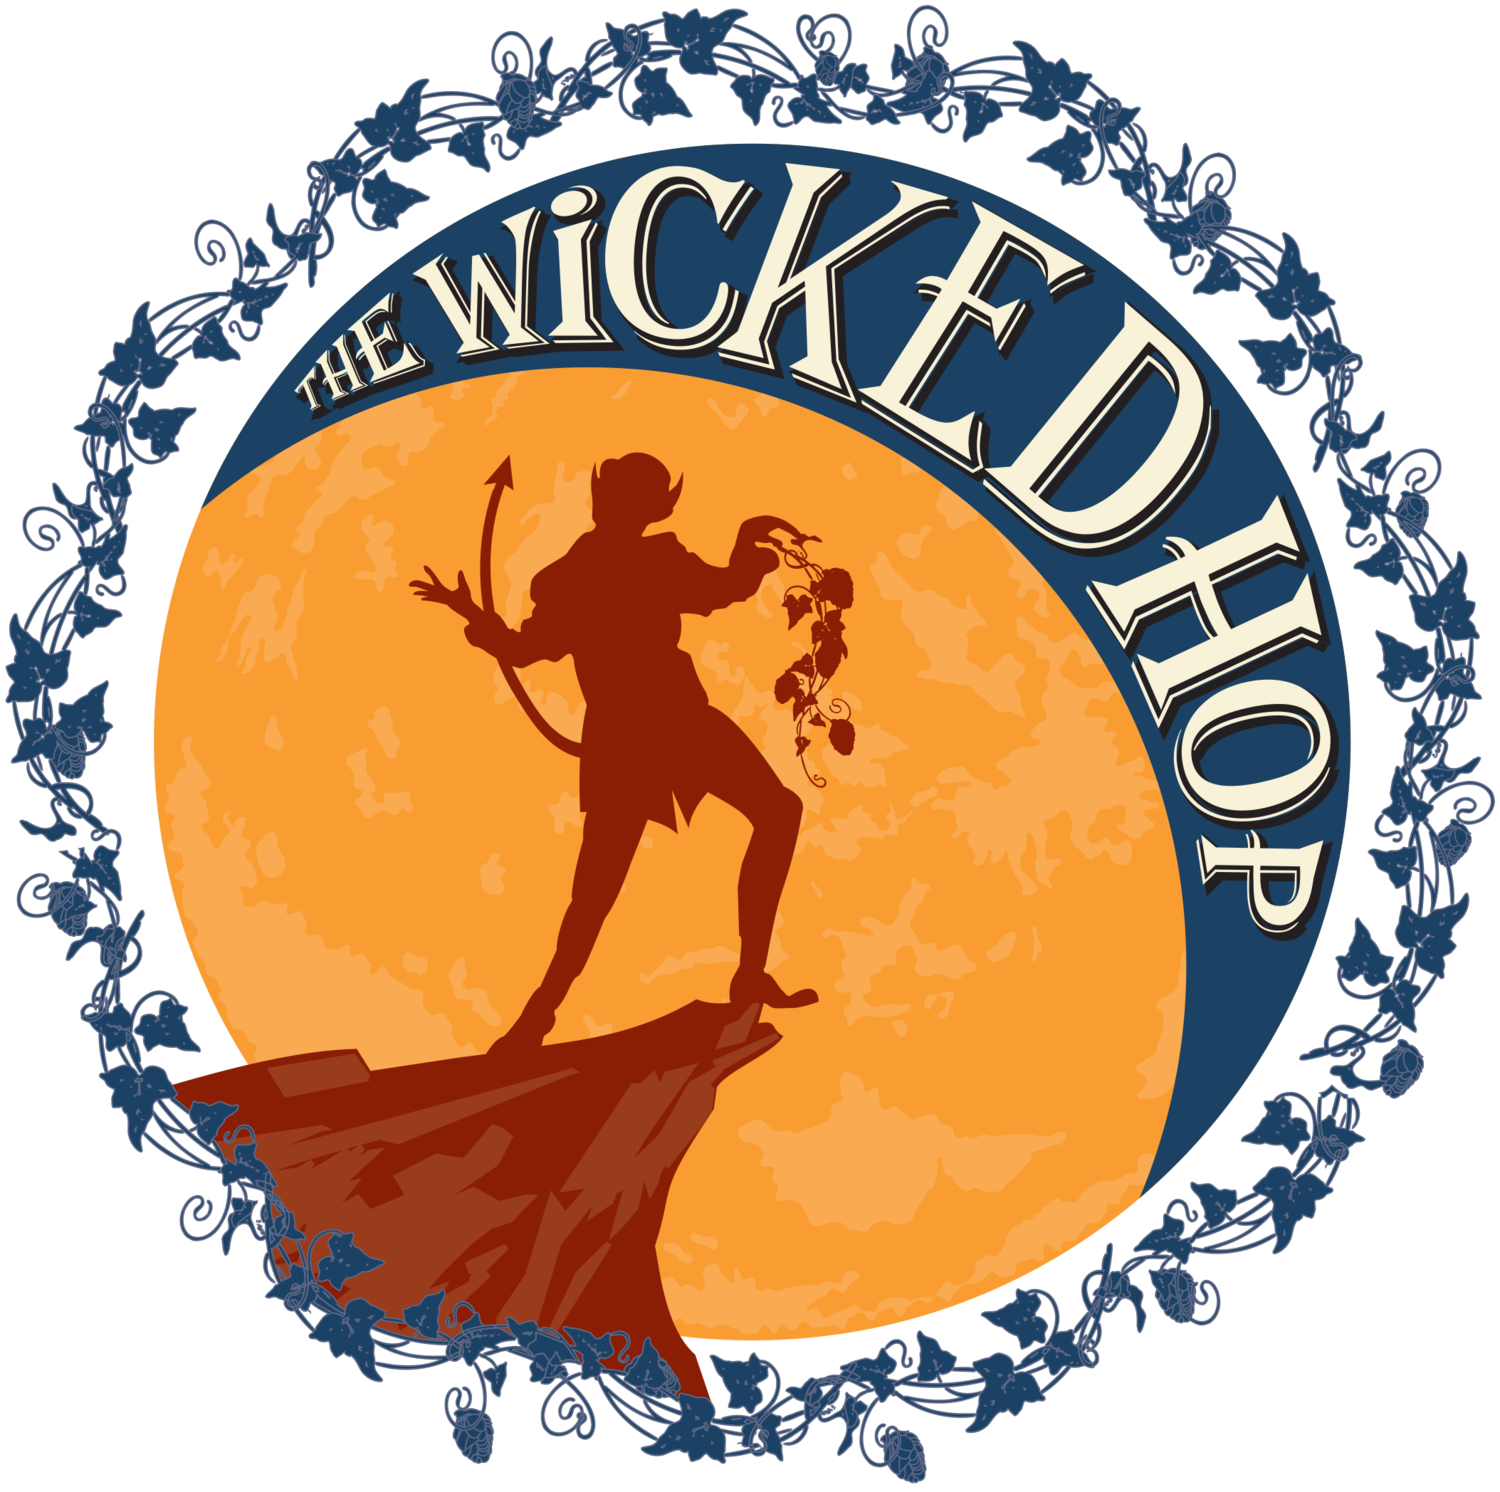 The Wicked Hop